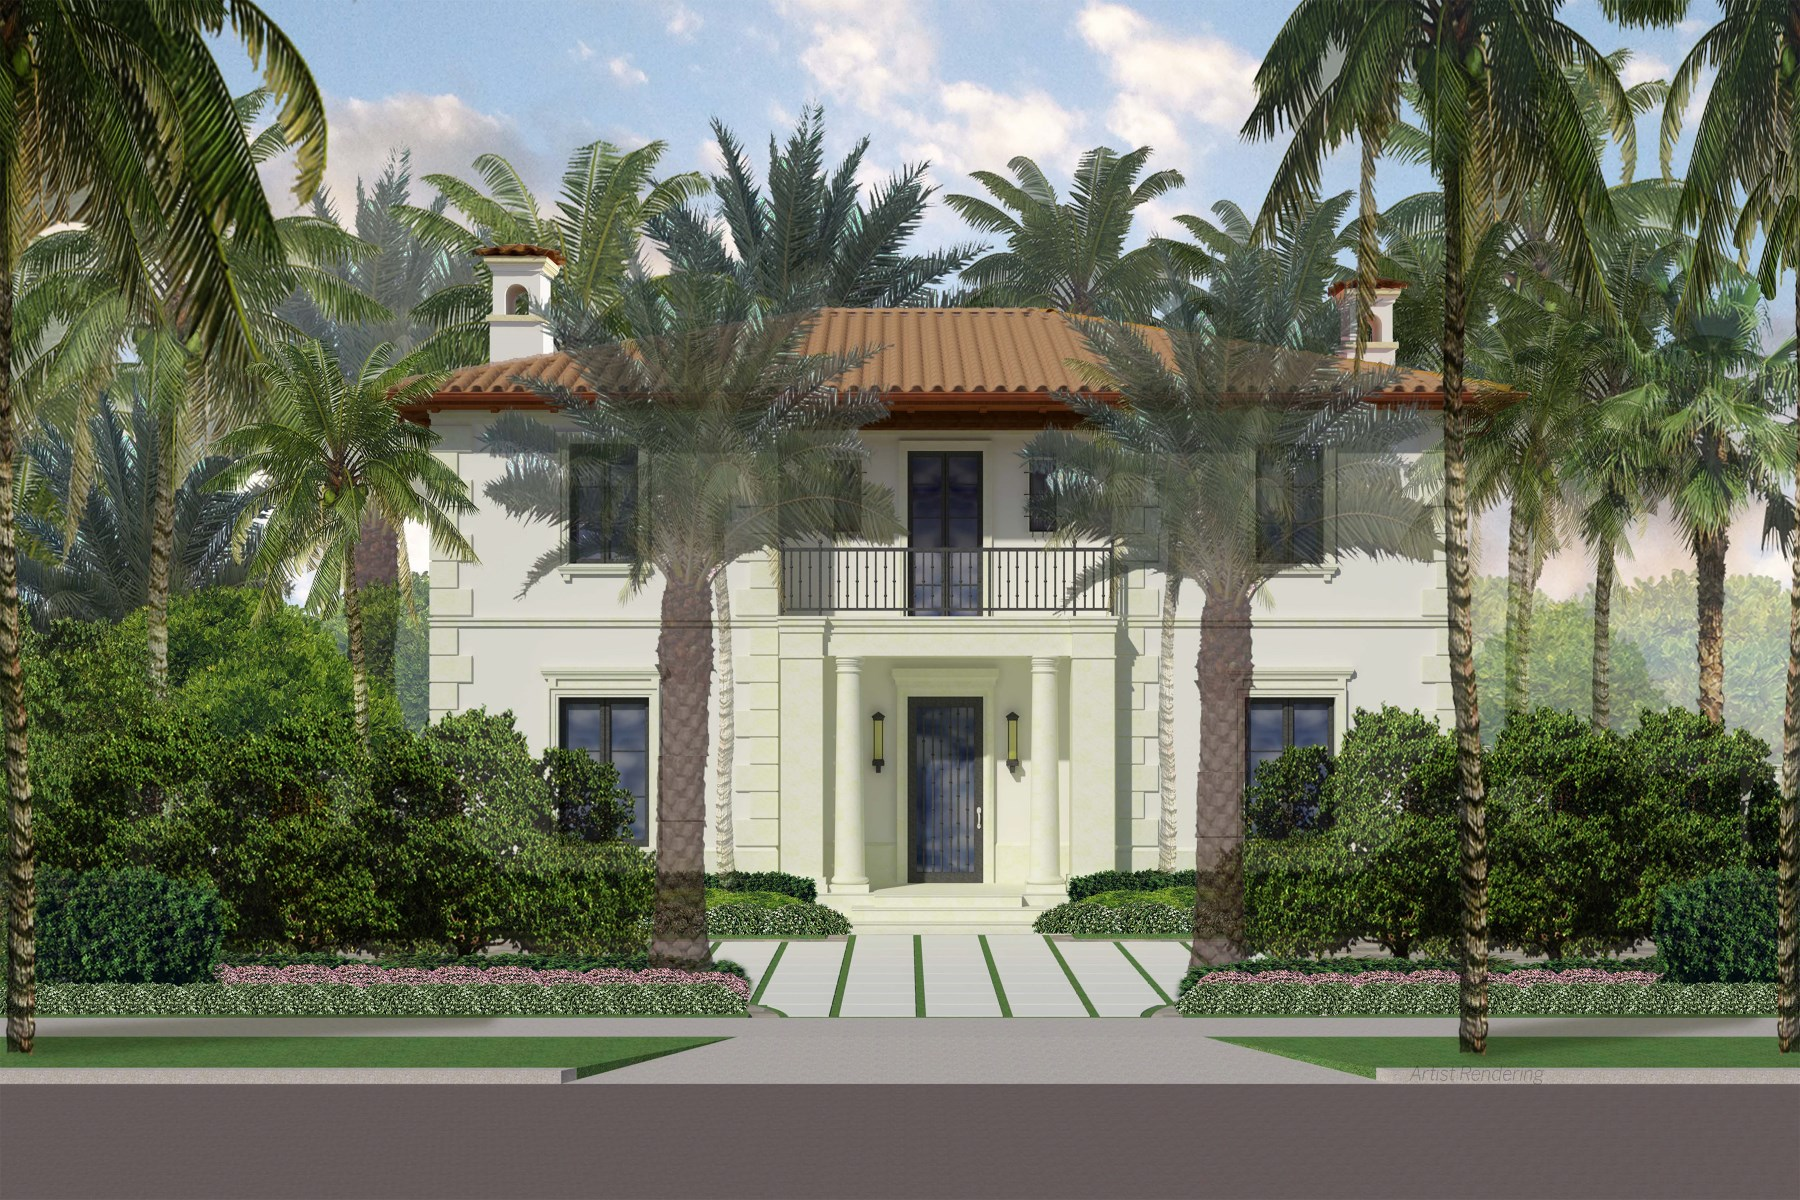 Moradia para Venda às Mid-Town Palm Beach New Construction 280 N County Rd North End, Palm Beach, Florida, 33480 Estados Unidos